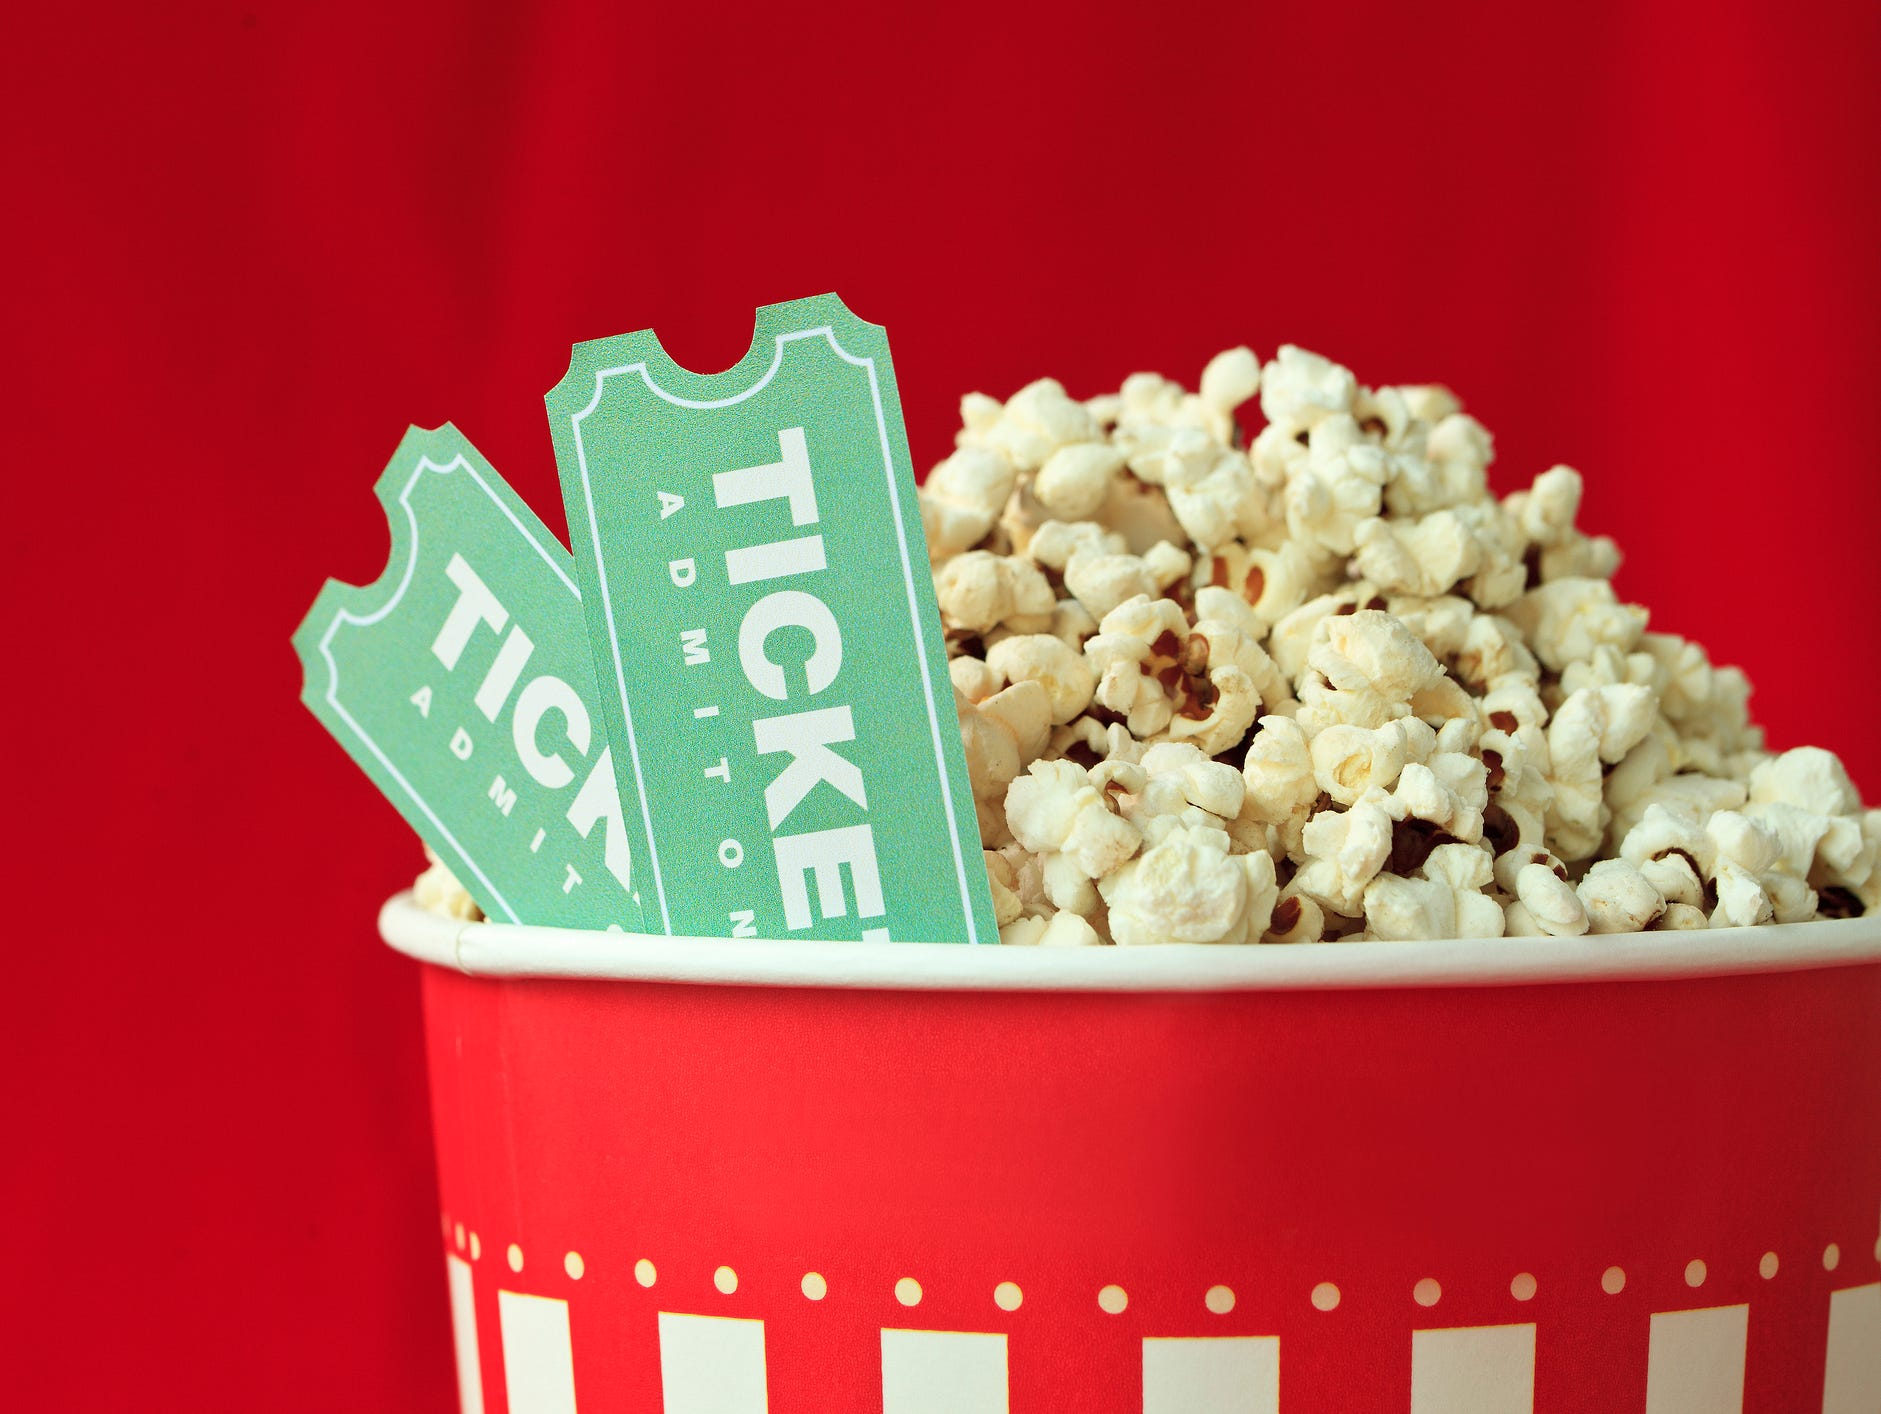 One Insider will enjoy FREE movie tickets all year long. Enter to win before 2/28!